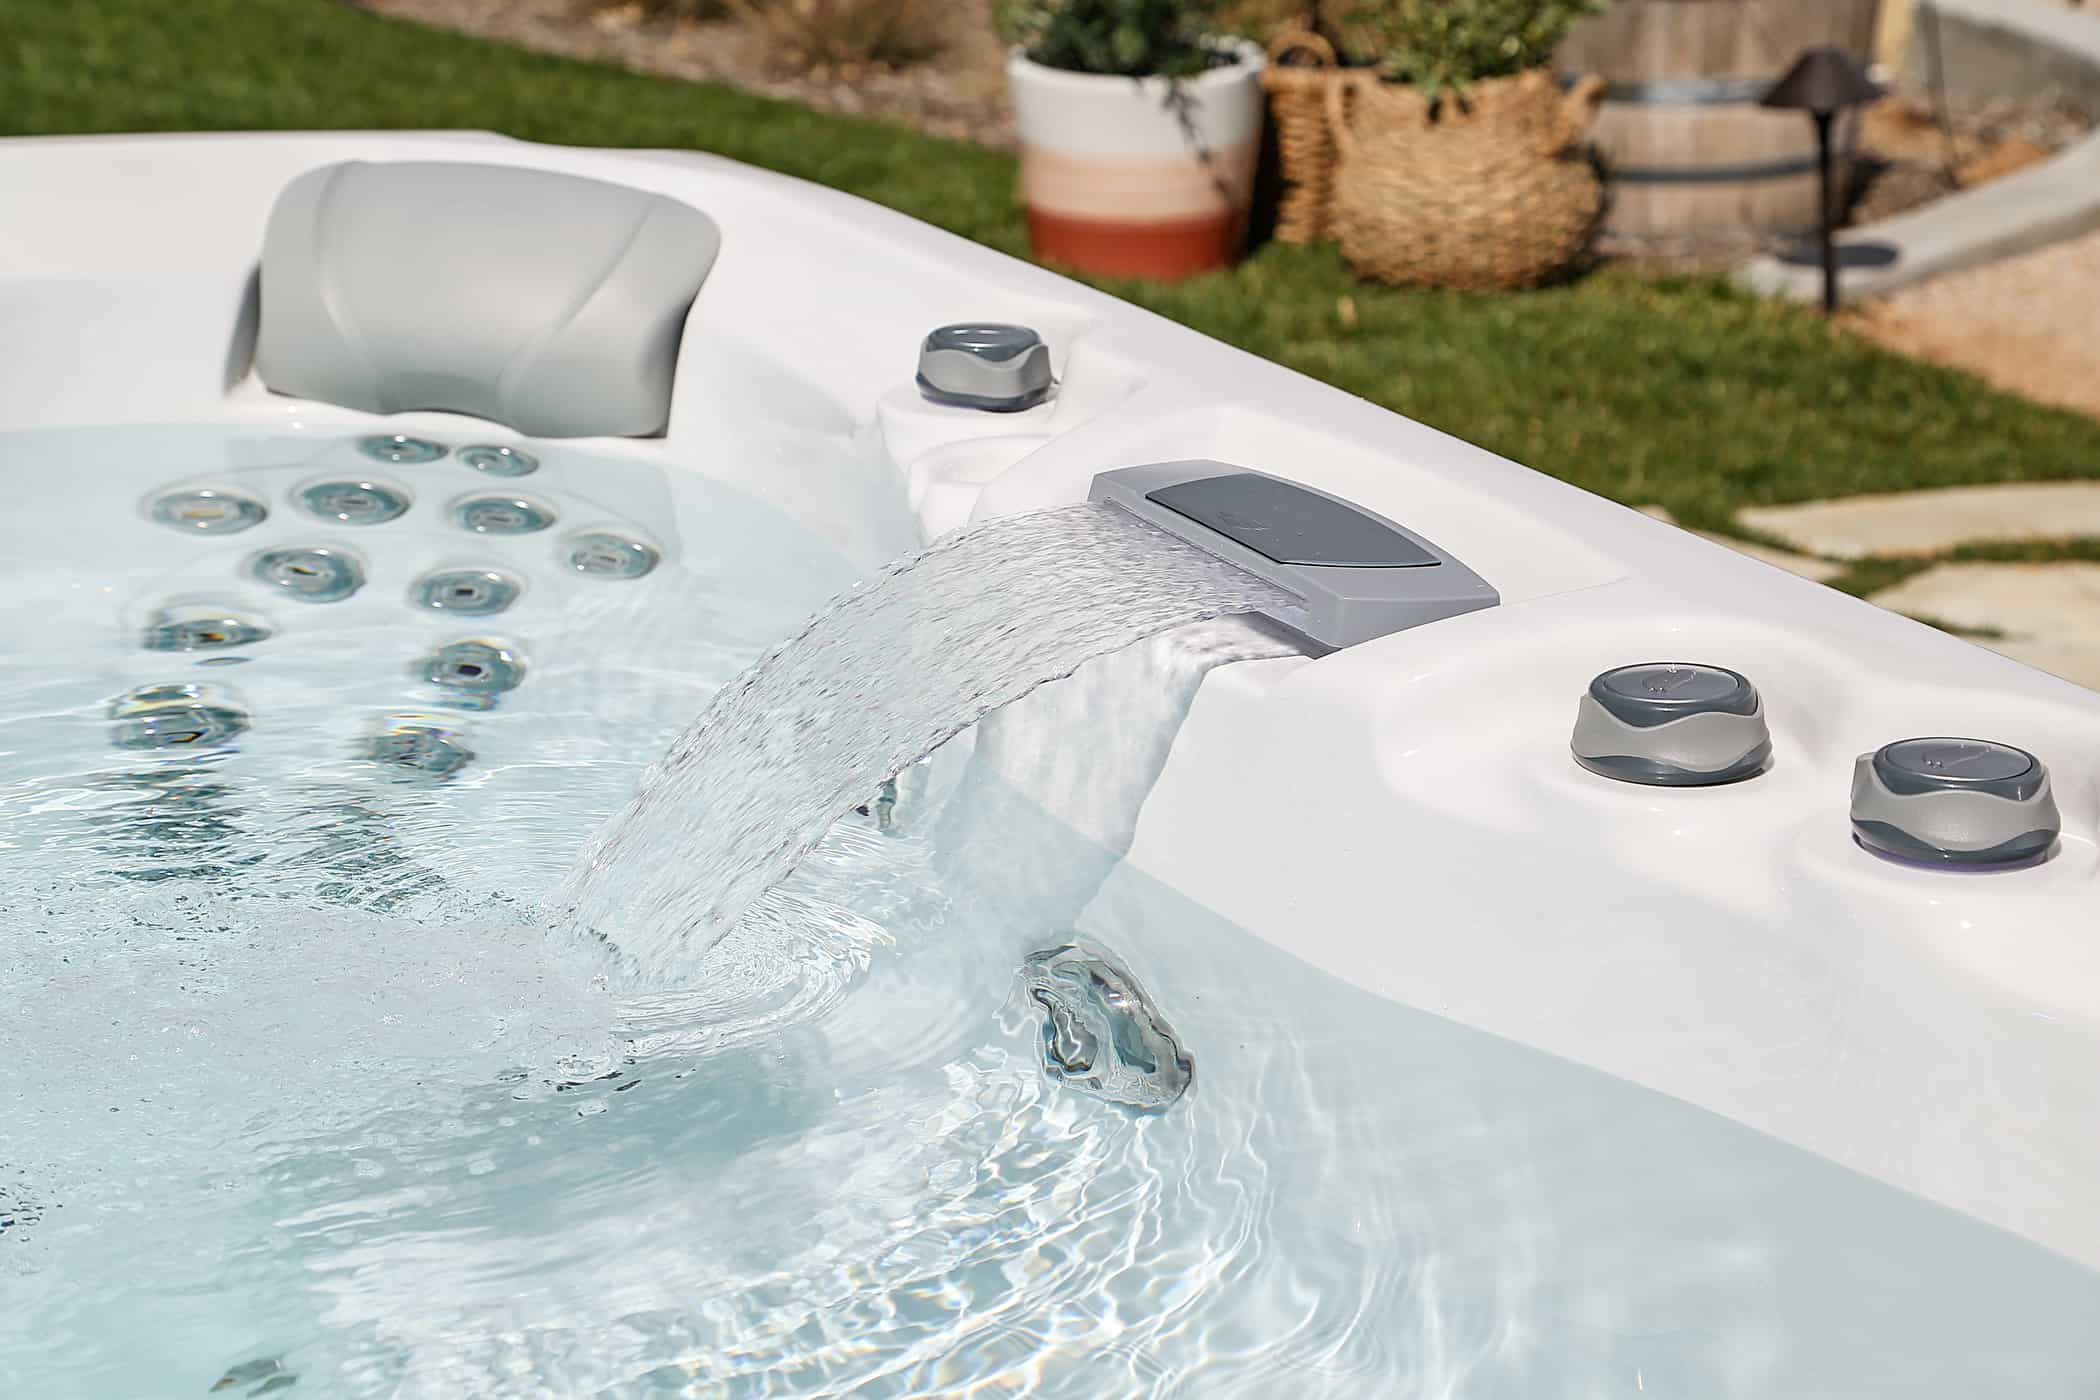 Sundance Spas waterfall hot tub feature